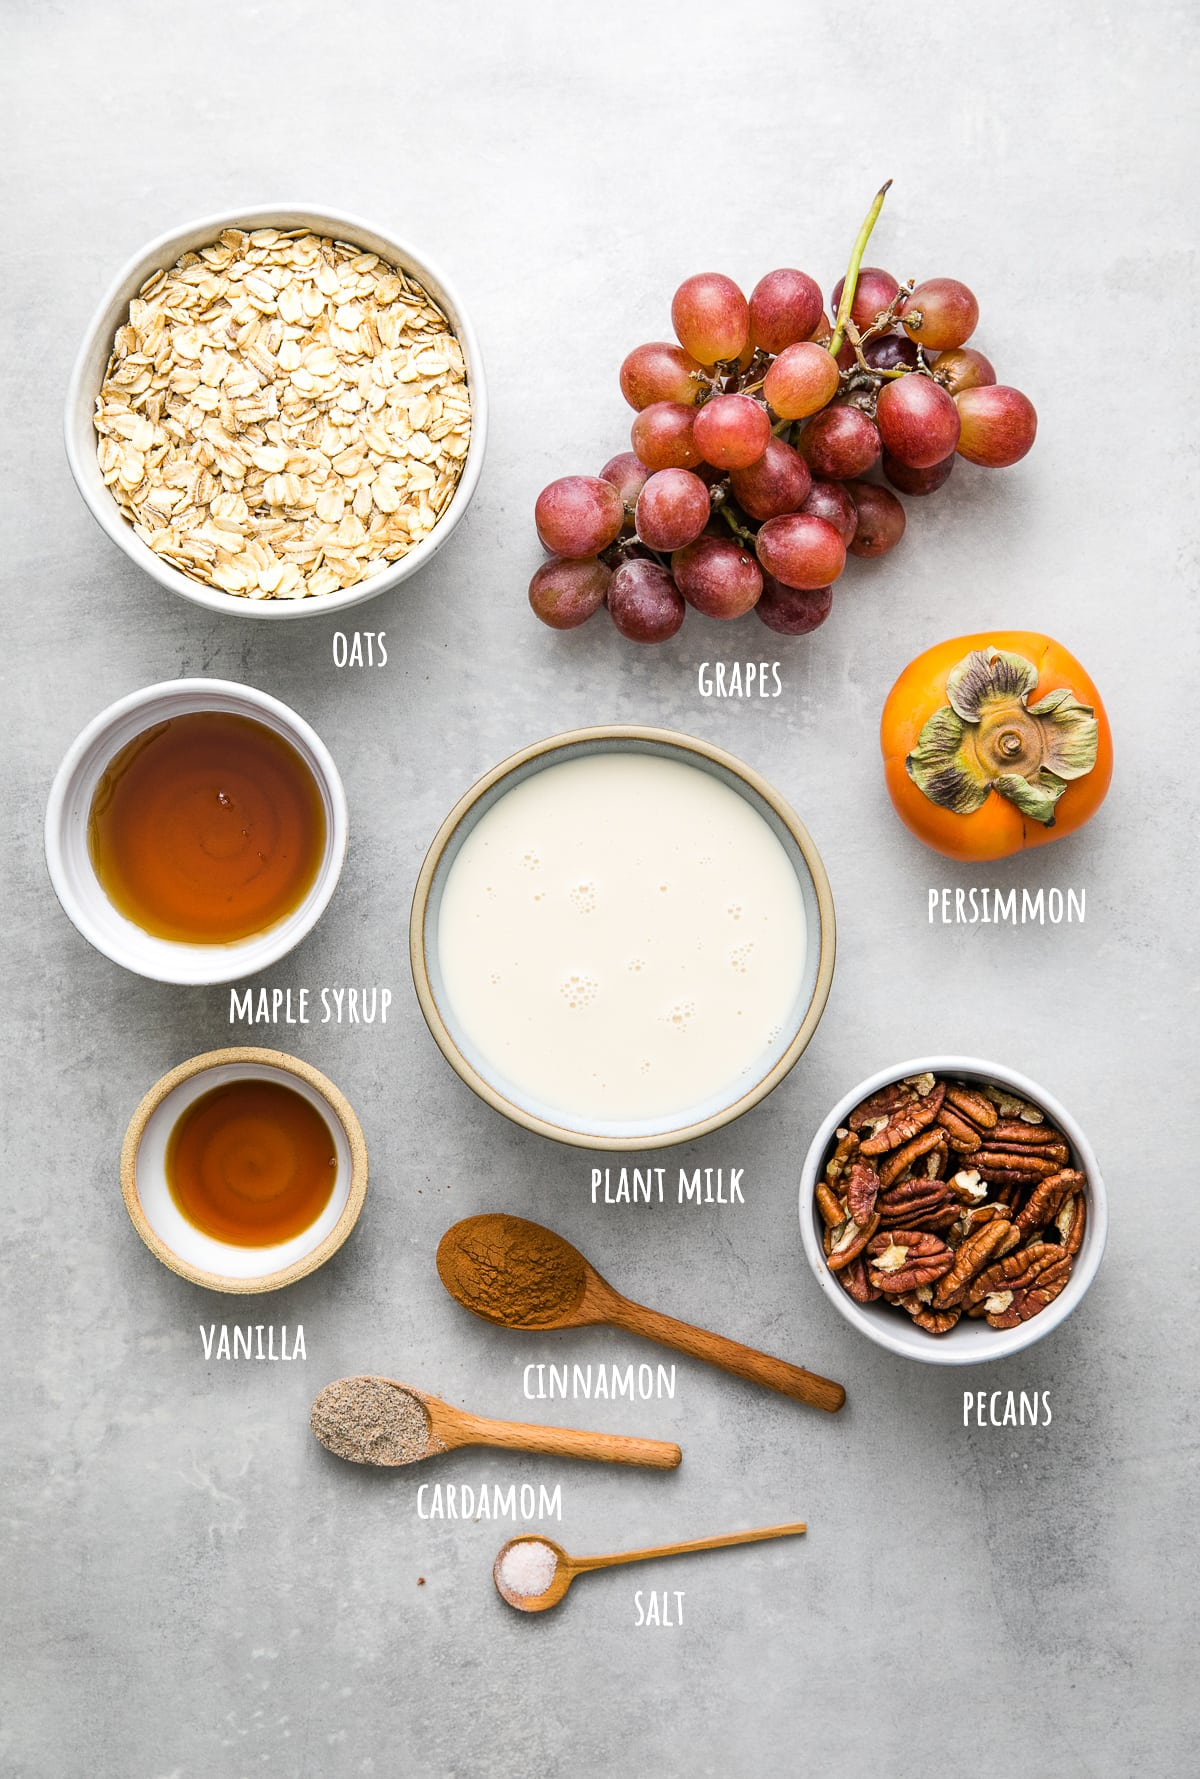 top down view of ingredients used to make healthy baked oatmeal with persimmon and grapes.